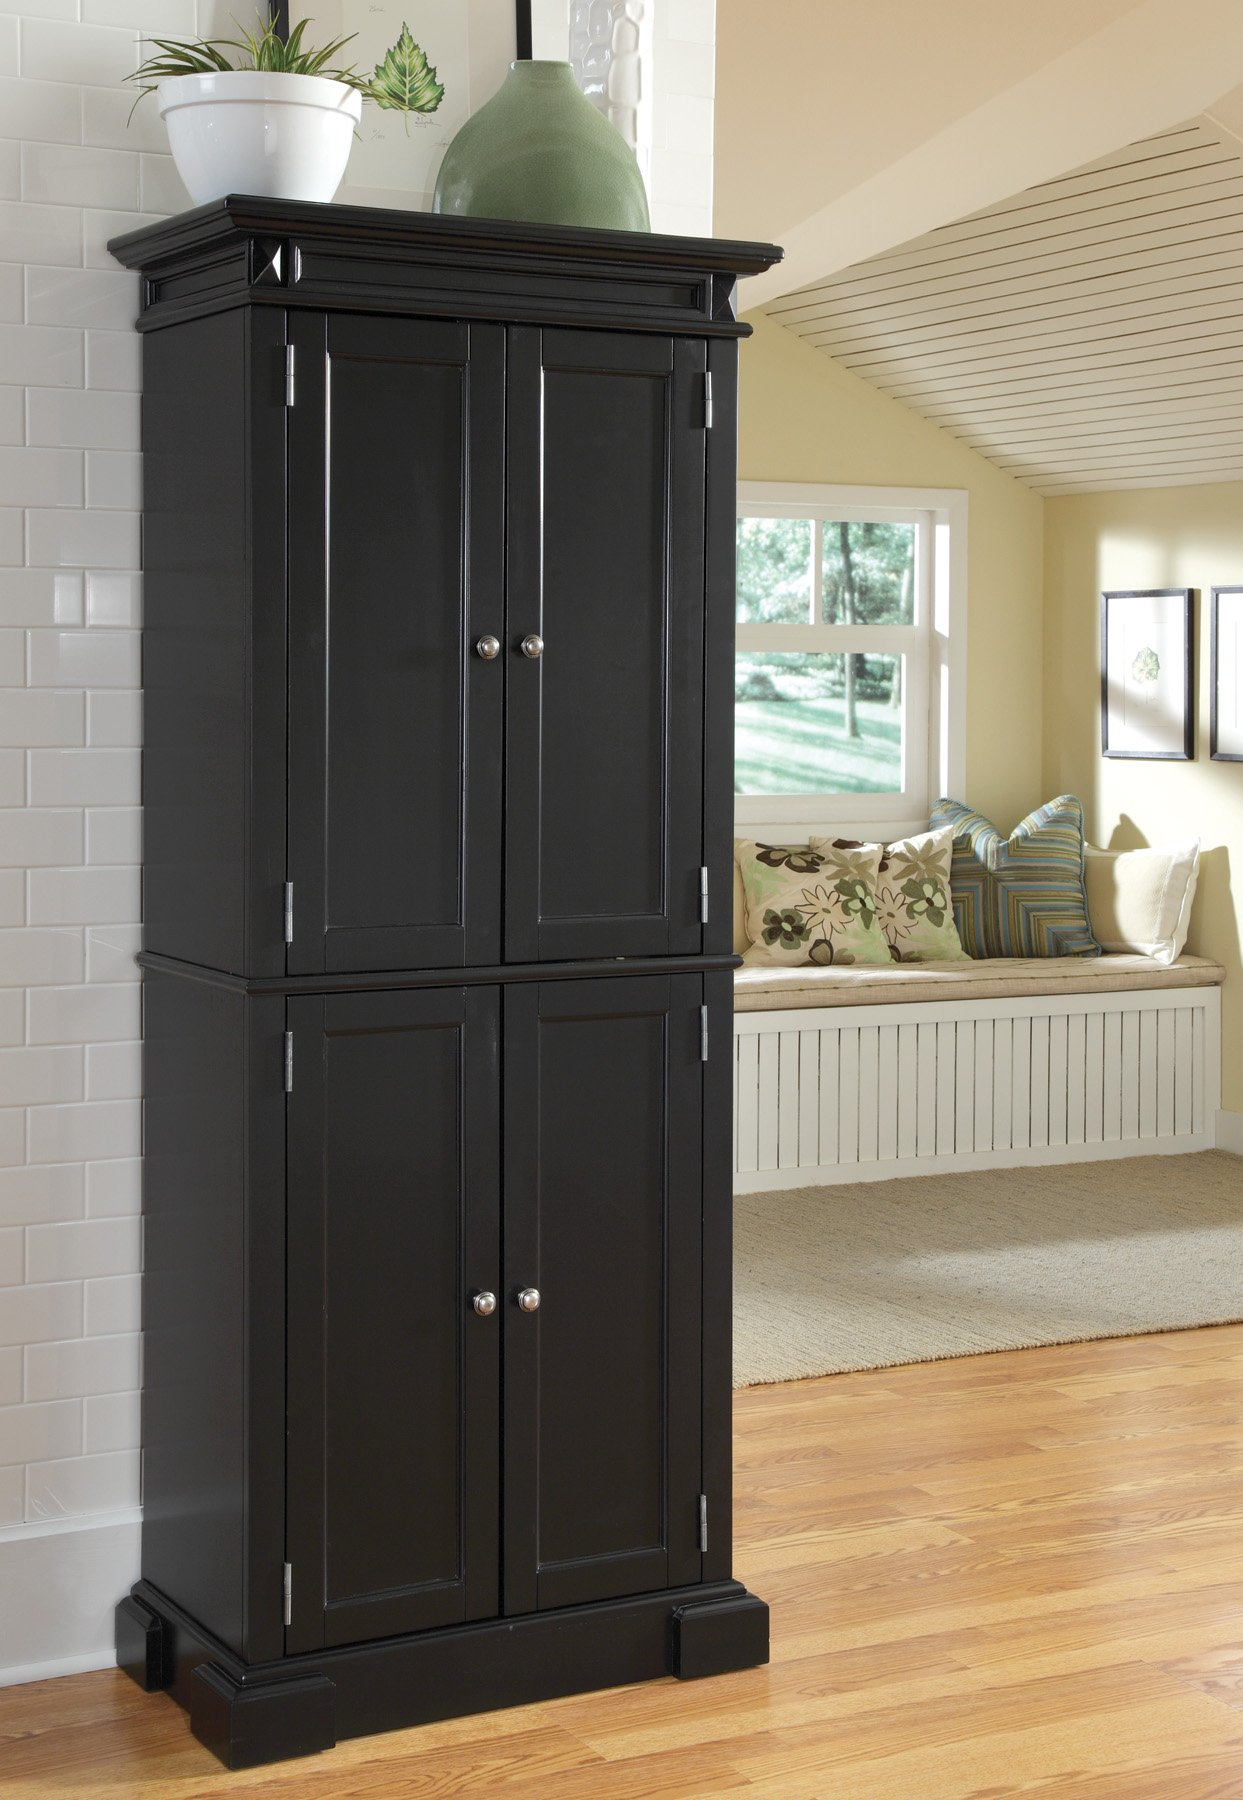 Americana Black Pantry by Home Styles by Home Styles